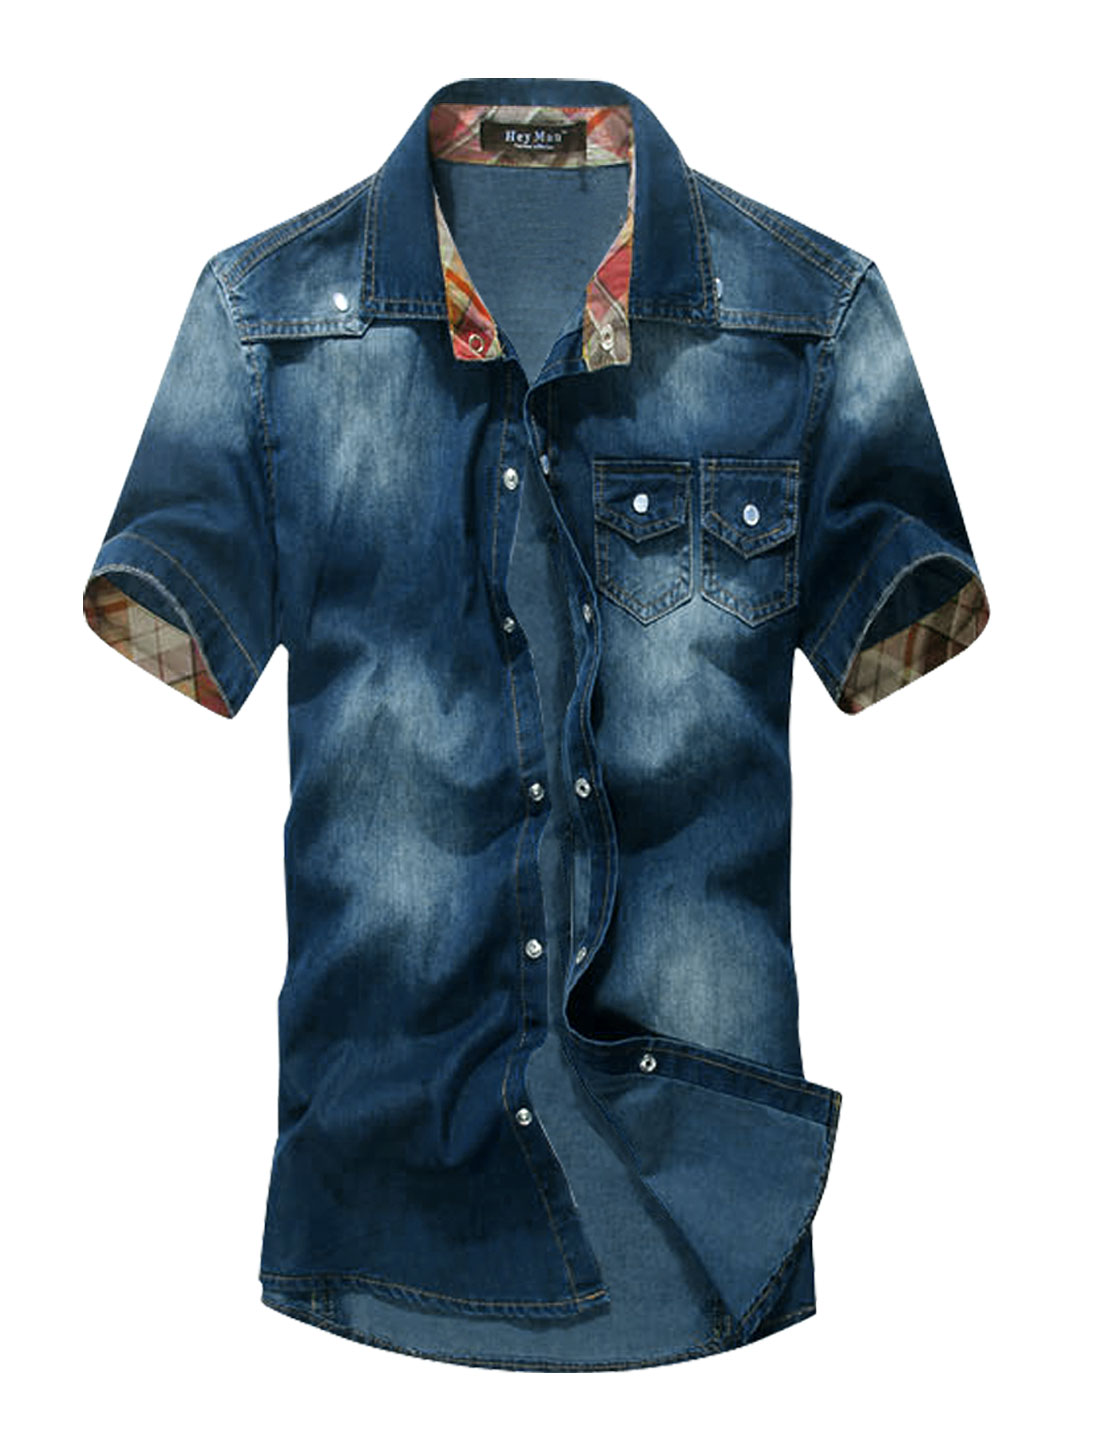 Men Snap Buttons Closed Western Style Double Chest Pockets Denim Shirt Dark Blue M